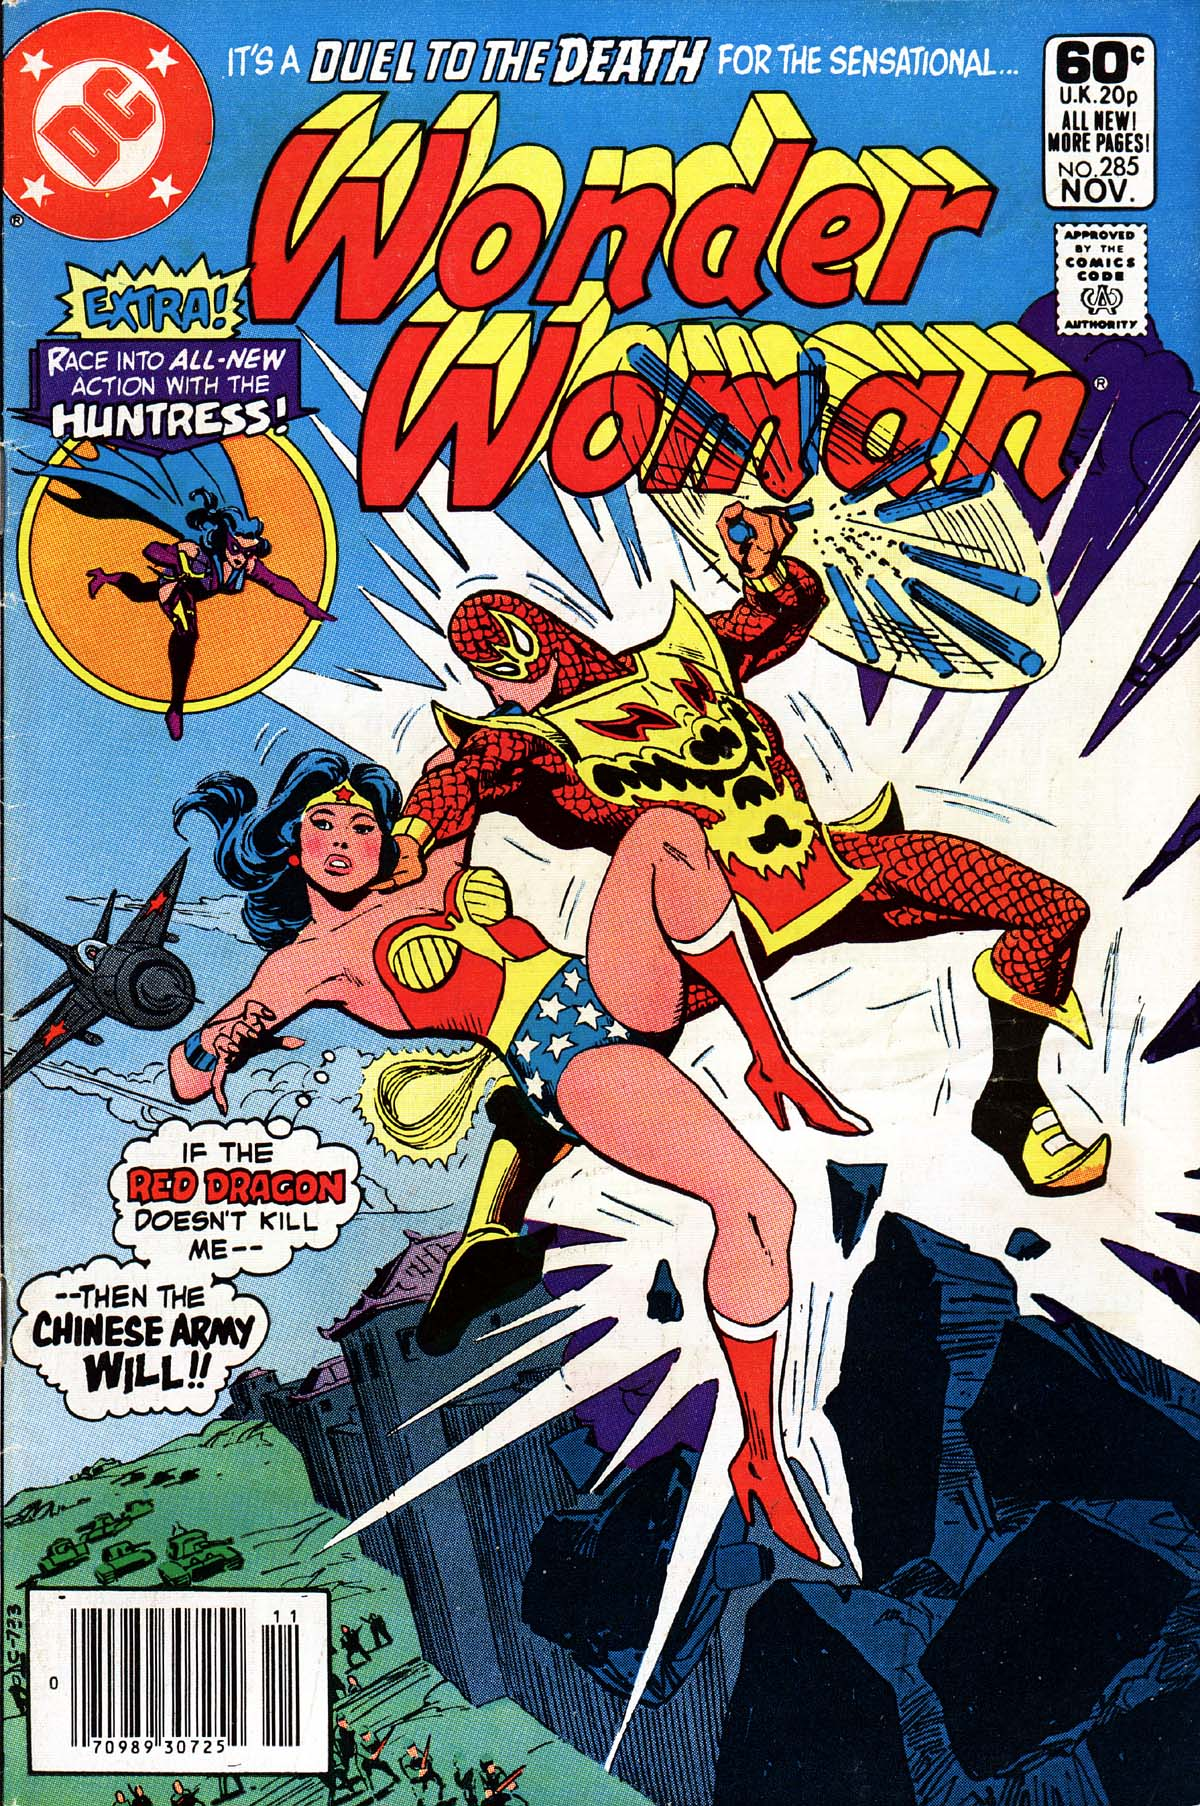 Wonder Woman (1942) #285, cover by Jose Delbo.